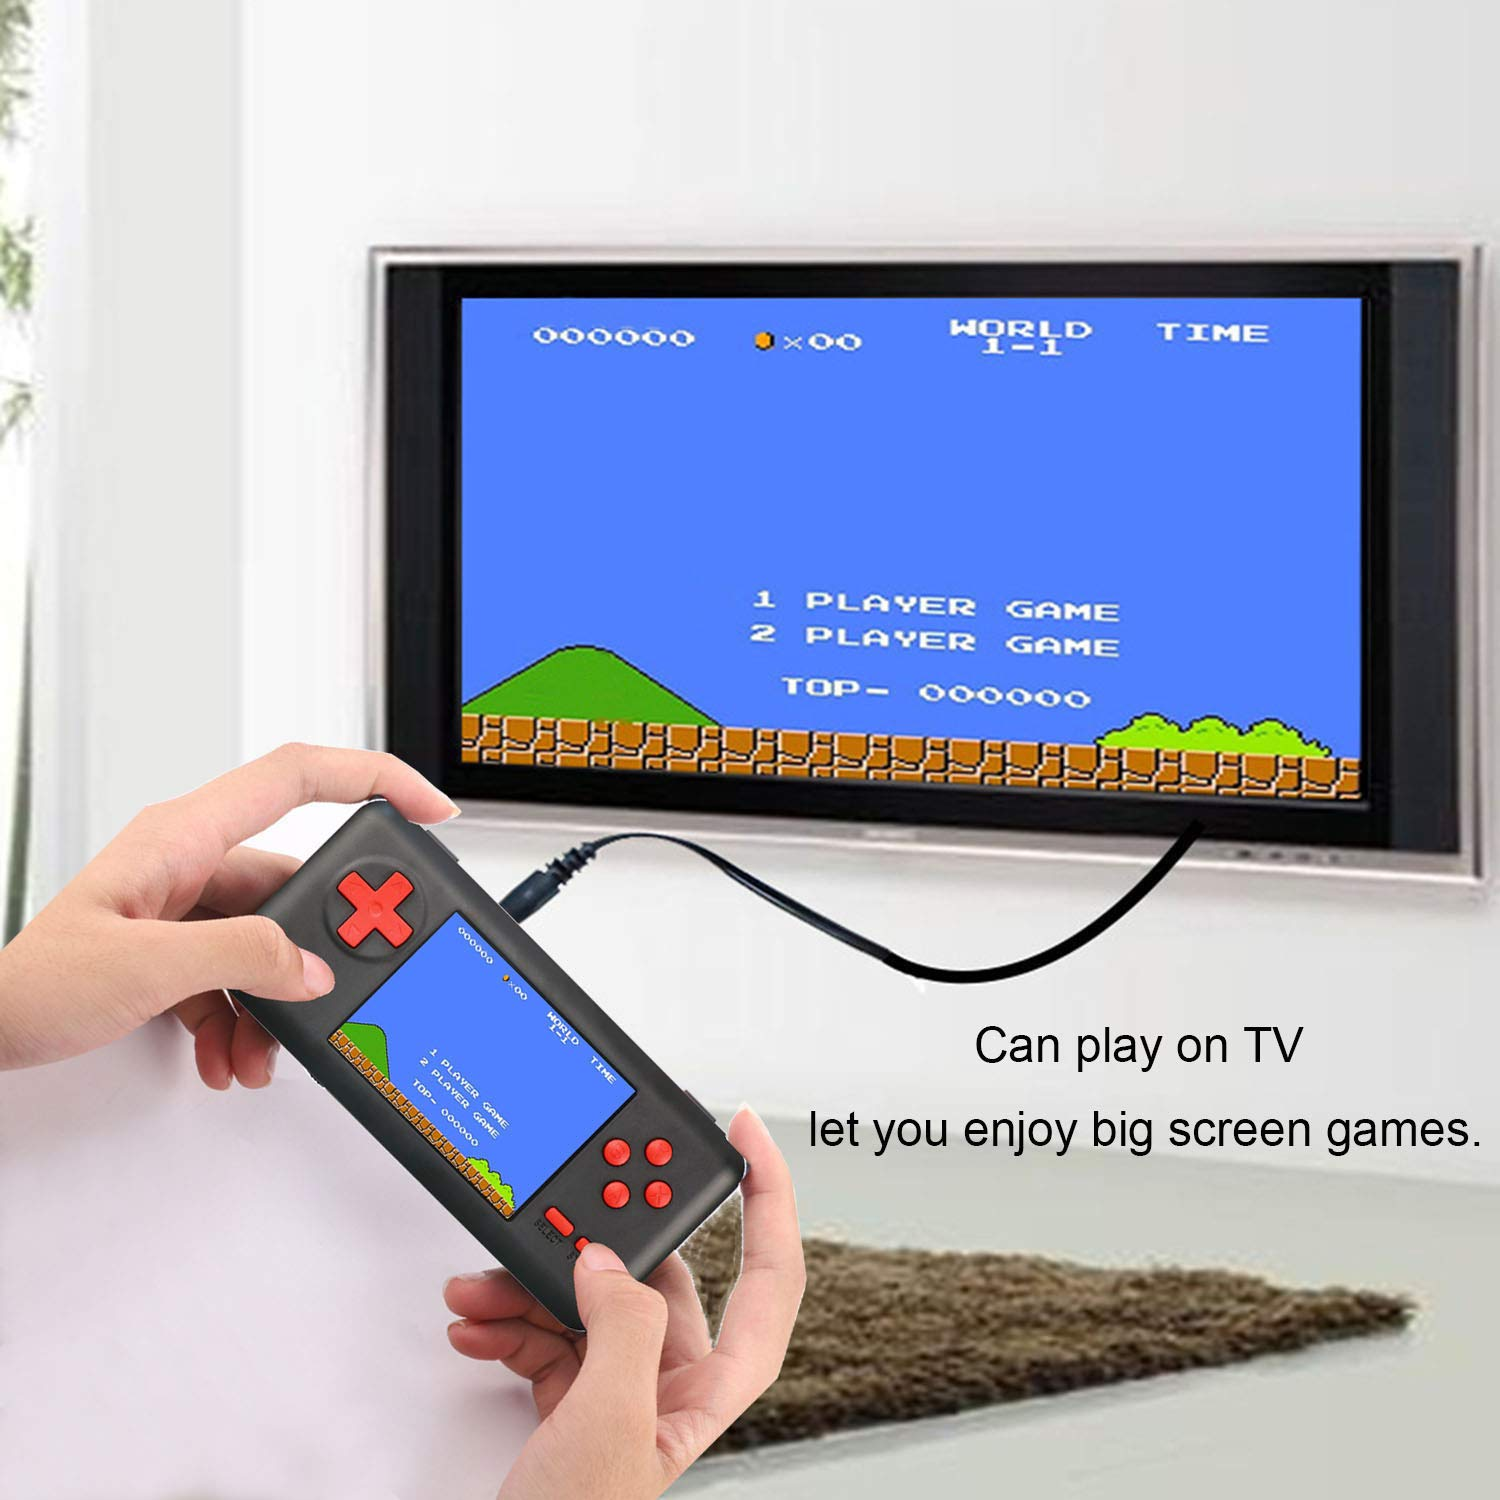 JAFATOY Handheld Games Console Built-in 150 Classic Games 8 Bit Games with AV Cable Can Play on TV Great for Adults Kids (Support TF Card Extensions) by JAFATOY (Image #3)